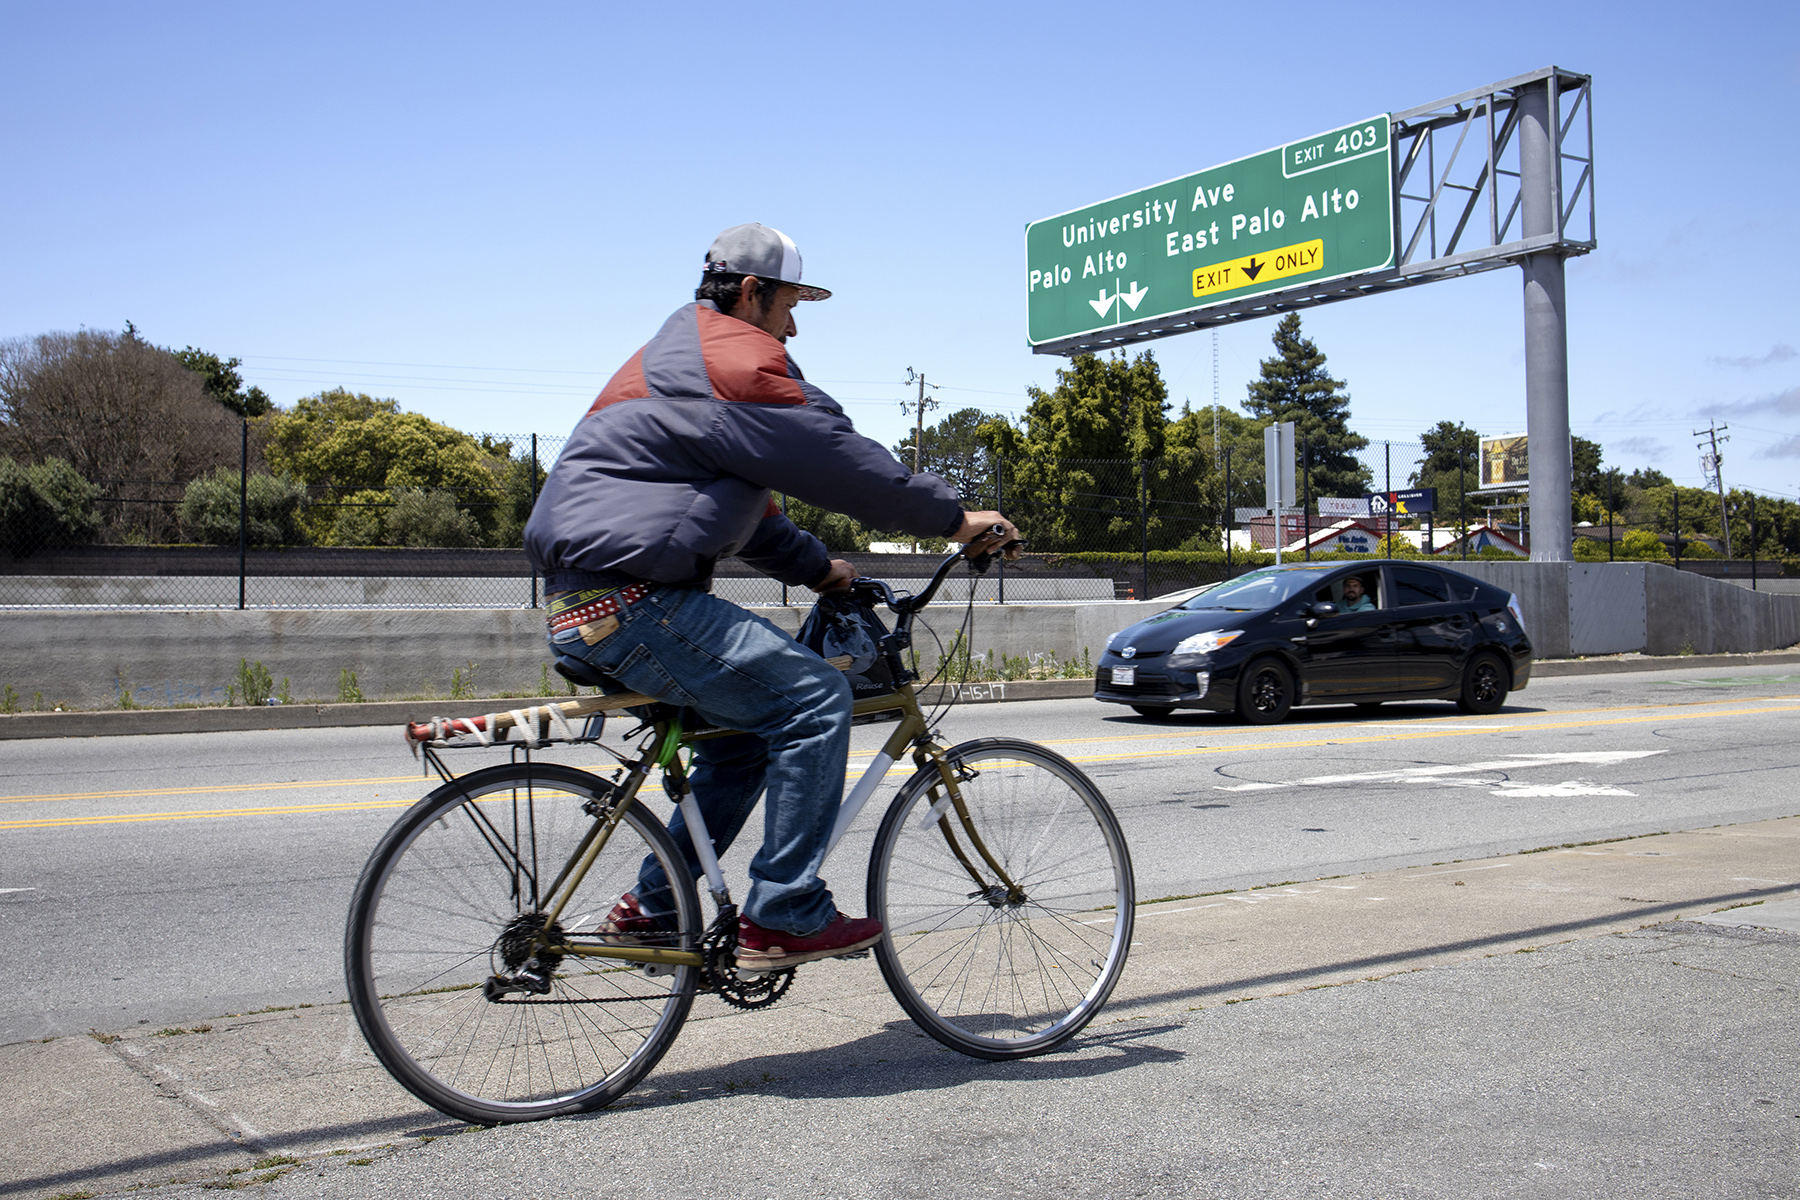 A bicyclist and car move along East Bayshore Road under a Highway 101 sign indicating the exit for University Avenue in East Palo Alto, Calif., on June 16, 2019. While a small sliver of East Palo Alto's land lies on the Palo Alto side of the highway, most of the city is separated by the busy freeway, which creates a physical as well as mental barrier between the two towns.